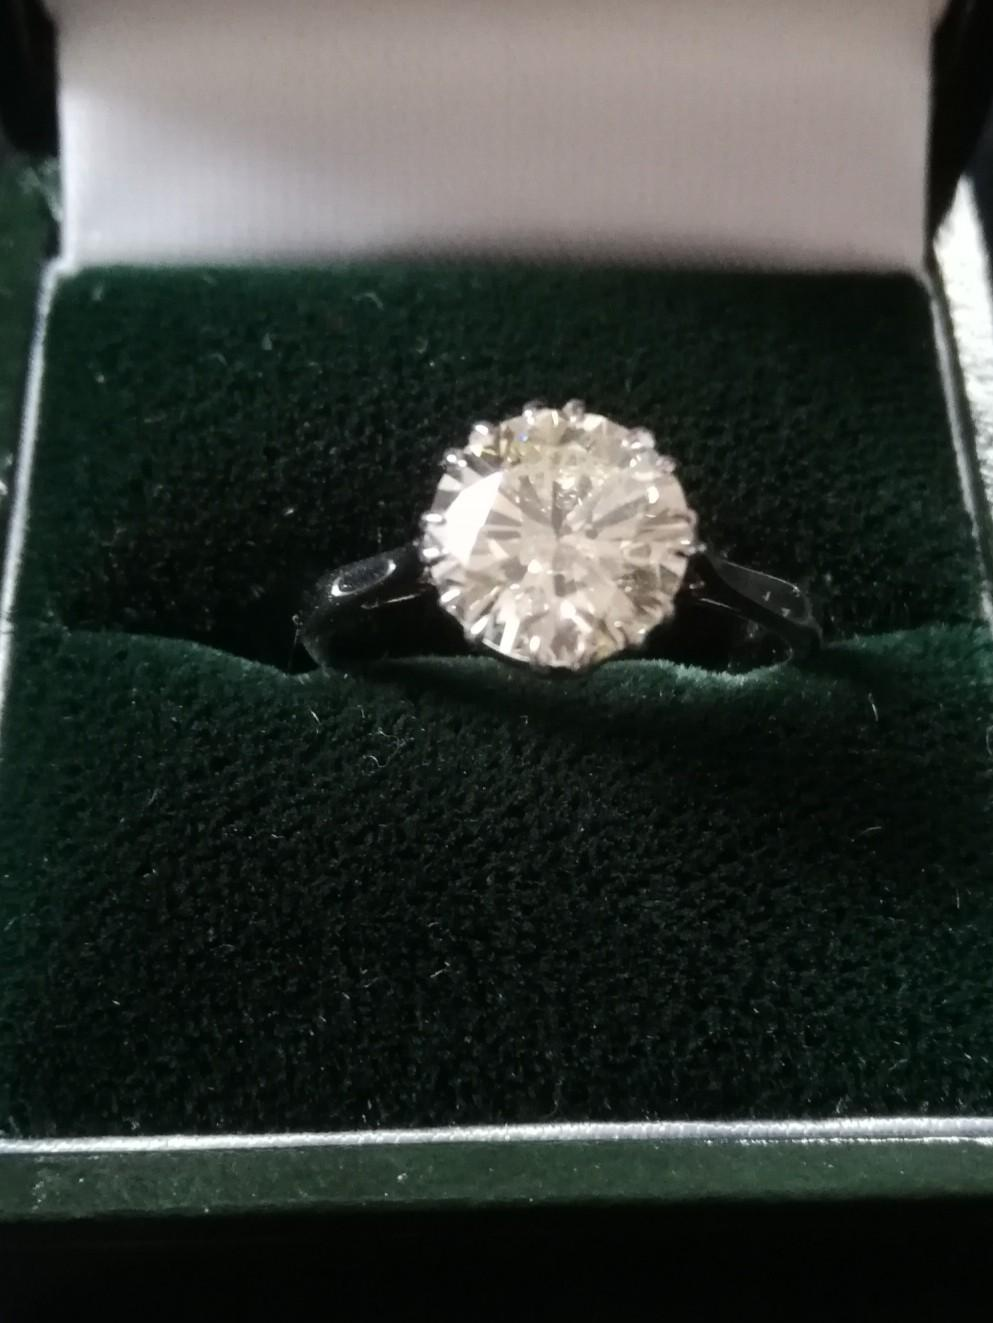 Diamond solitaire ring 2.37ct - Image 4 of 4